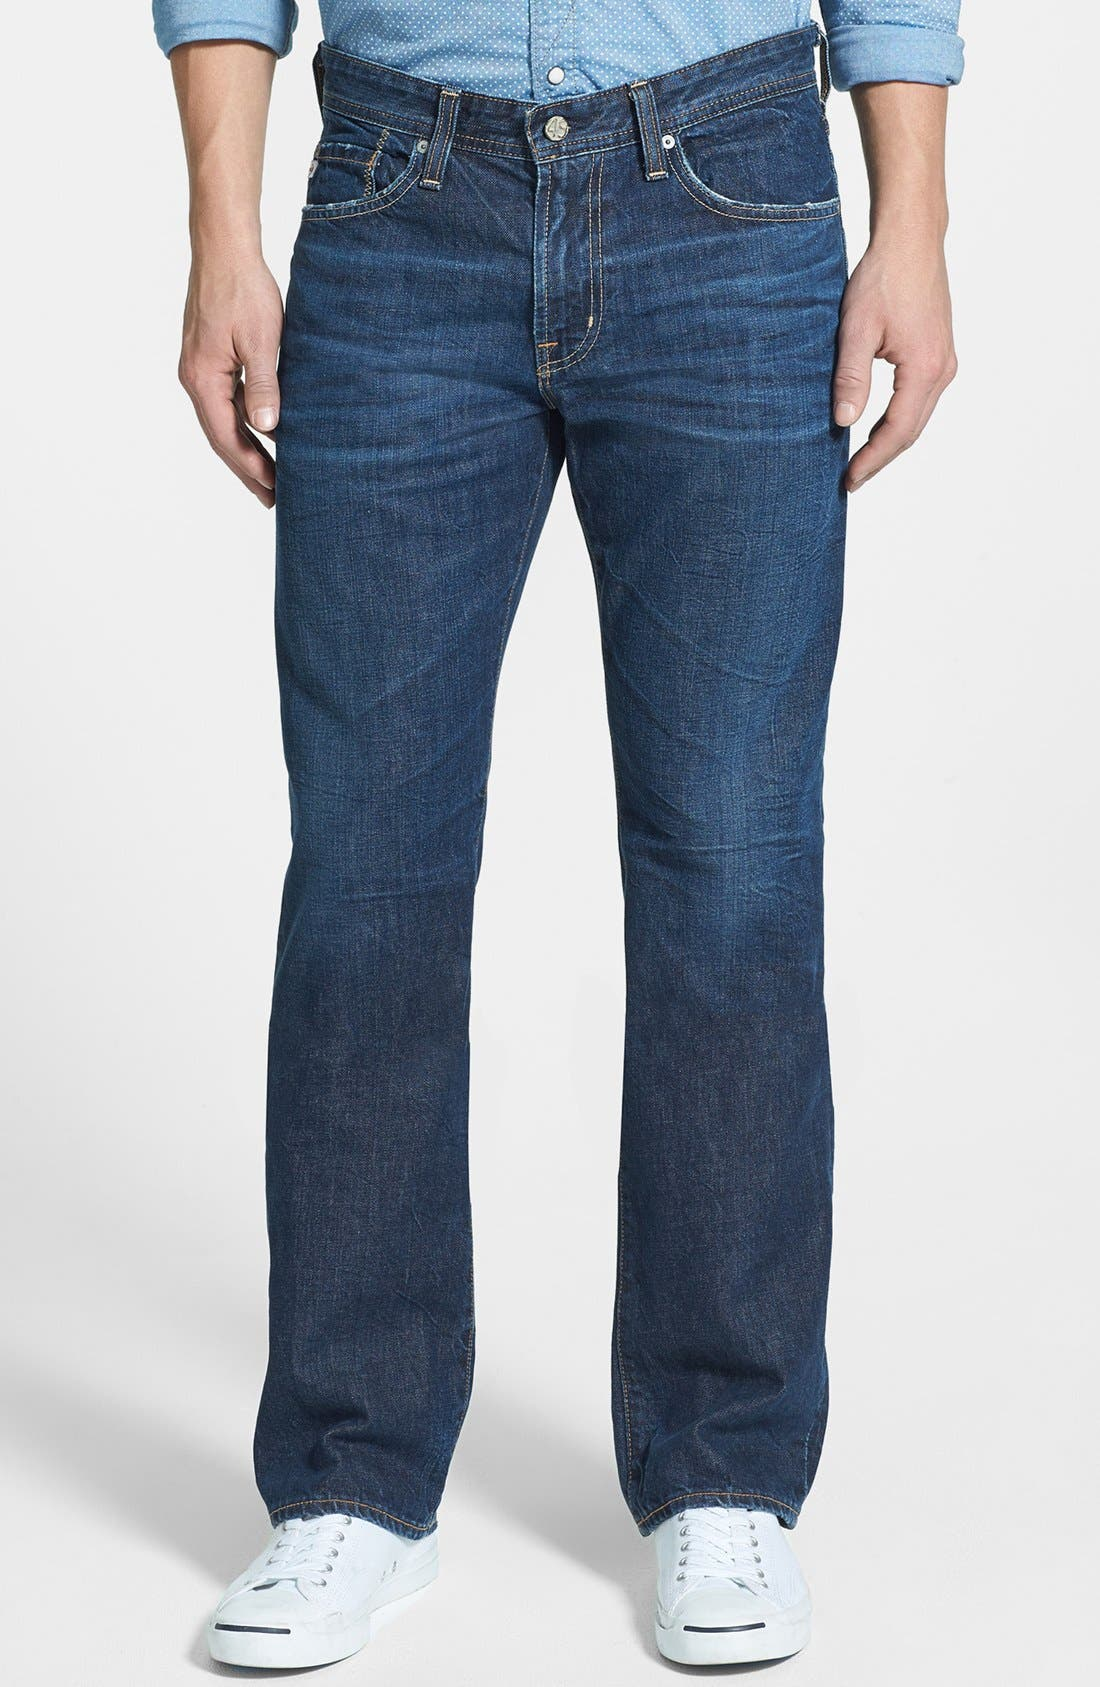 Alternate Image 1 Selected - AG 'Protégé' Straight Leg Jeans (Five Year Field)